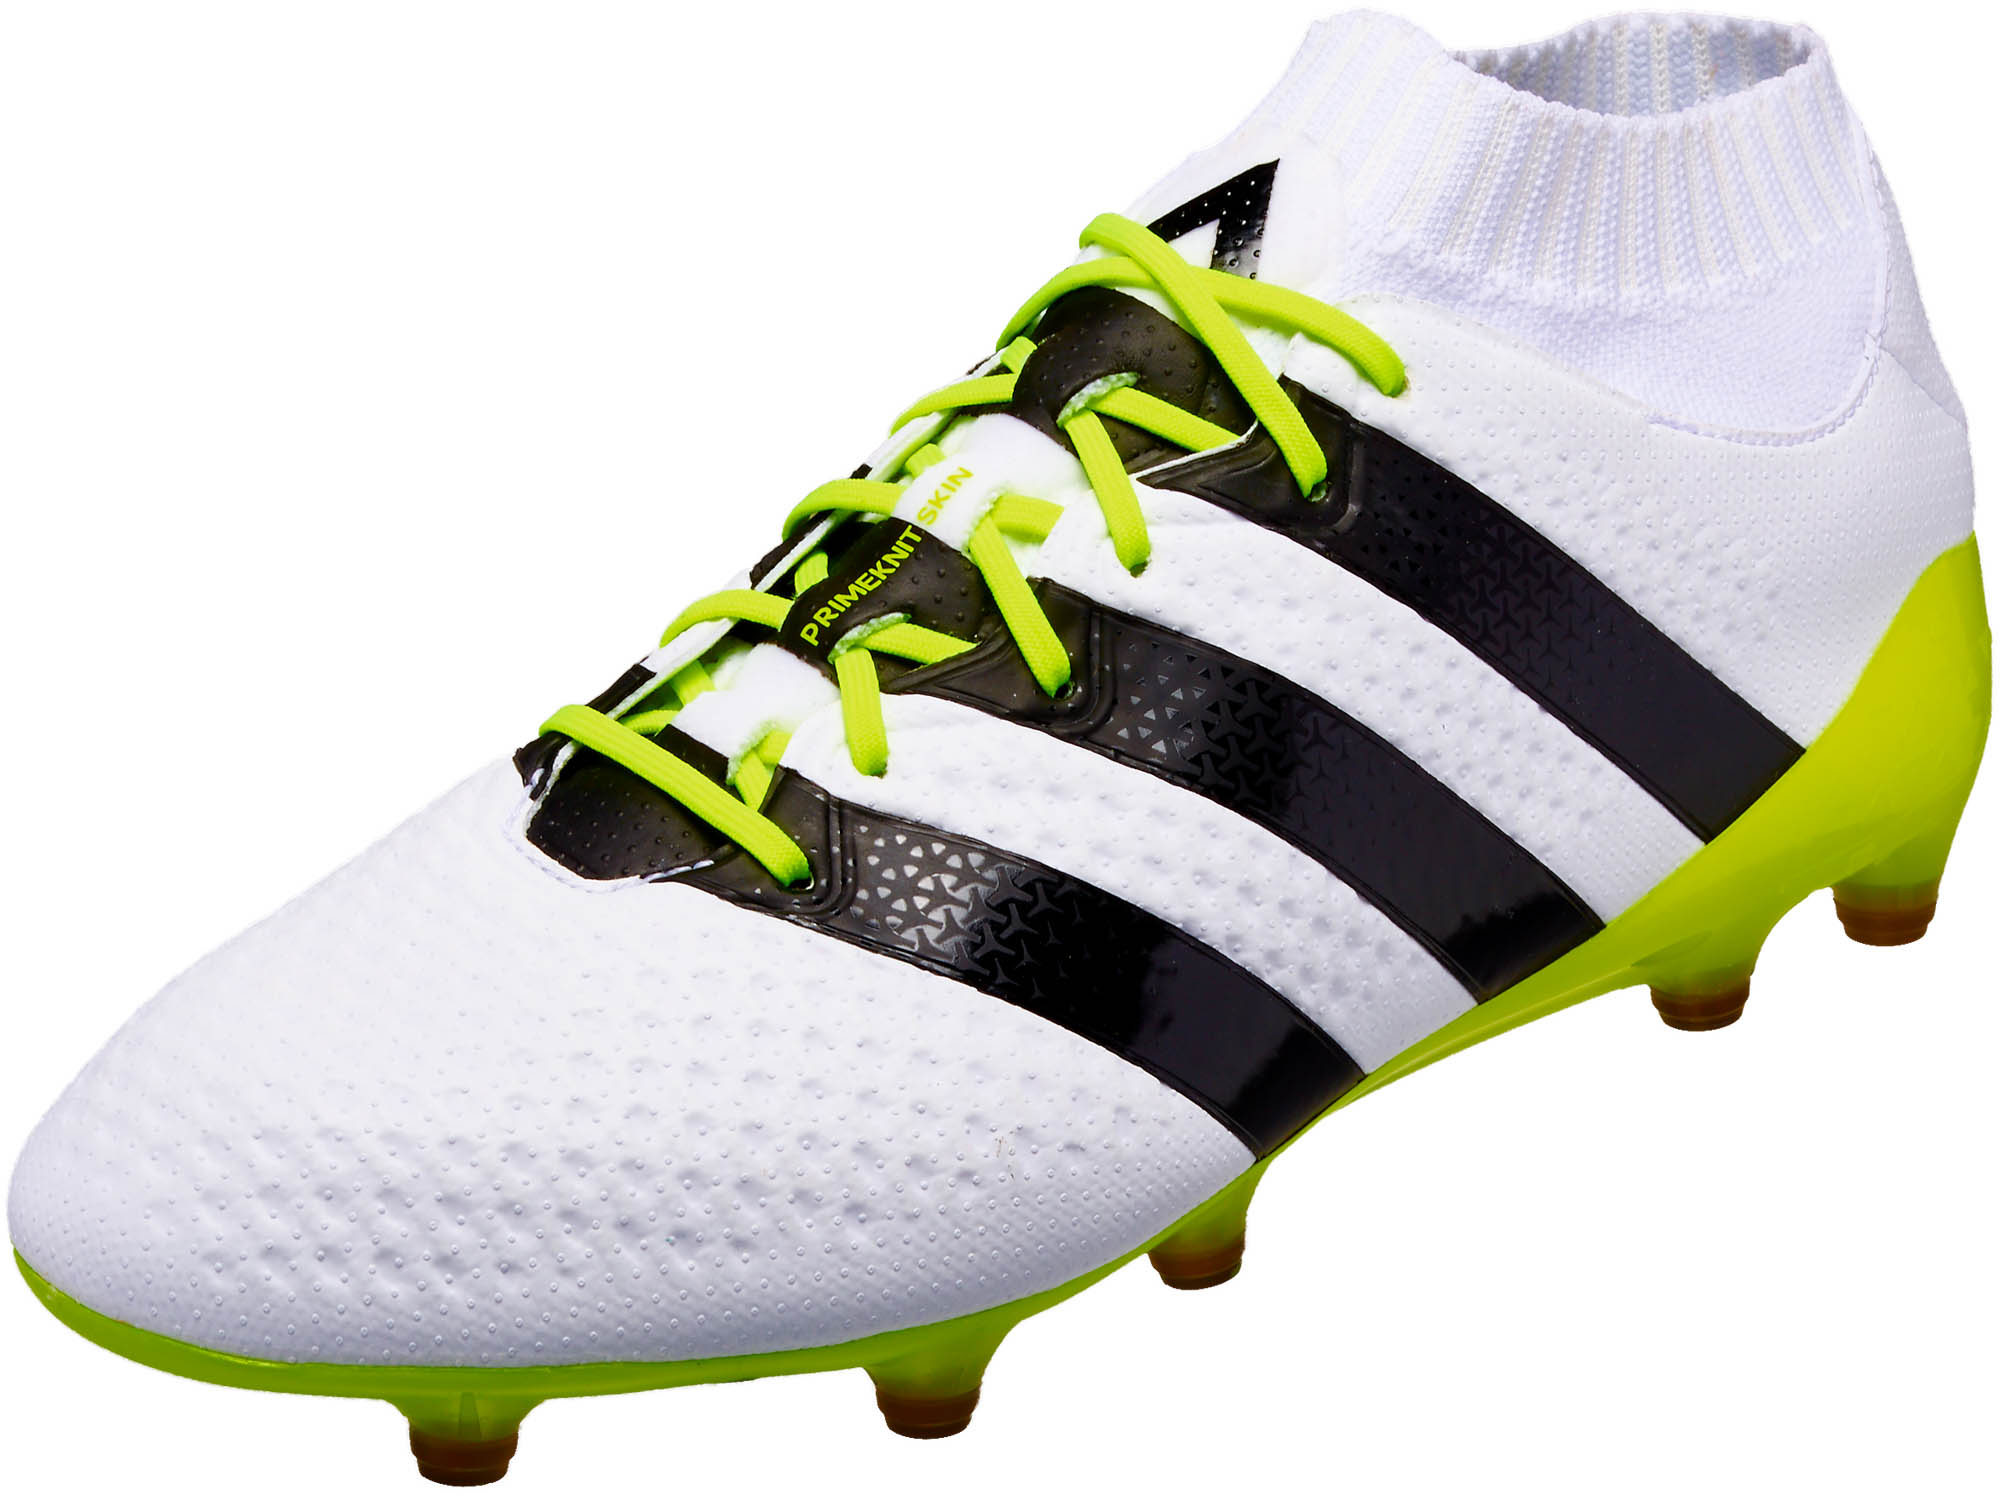 adidas Womens ACE 16.1 Primeknit FG Cleats - adidas Soccer Cleats 1473d4a57